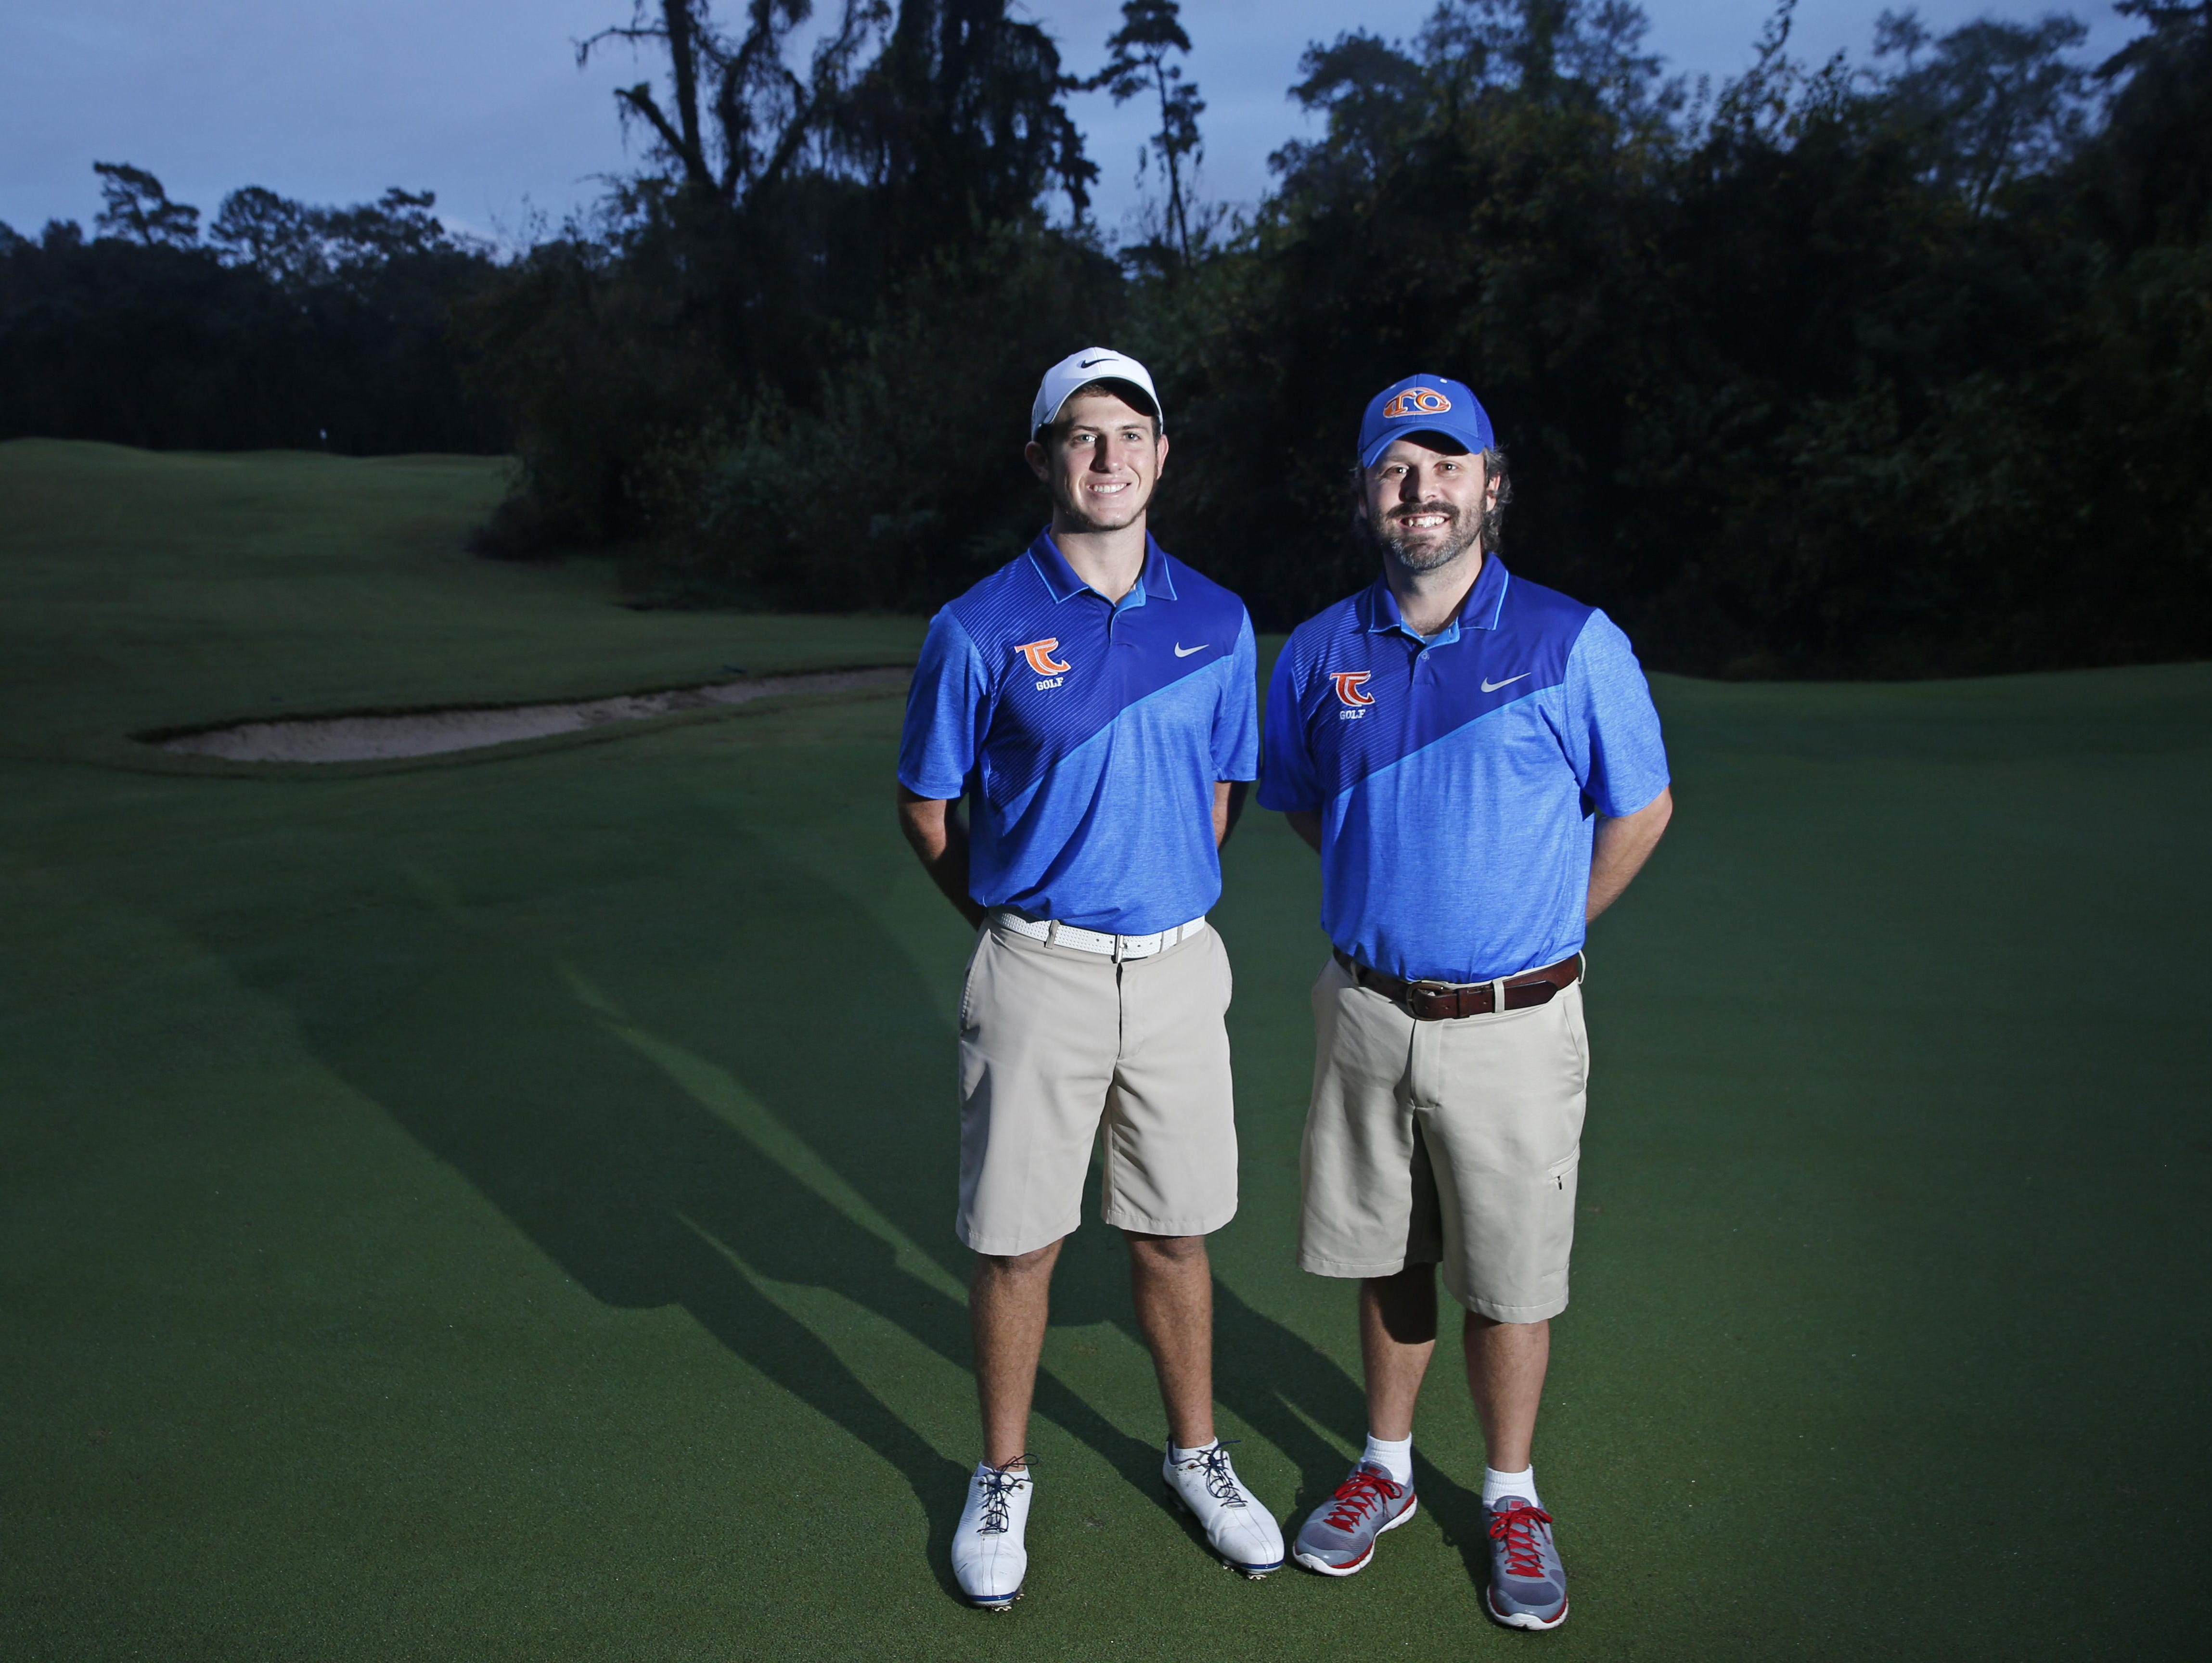 The 2015 All-Big Bend Player of the Year for boys golf is Taylor County senior Cole Wentworth, who won district and regional titles in leading the Bulldogs to team titles in both and the state playoffs. This was all accomplished for the first time in school history, earning Taylor County coach John Carson the 2015 All-Big Bend Coach of the Year award.